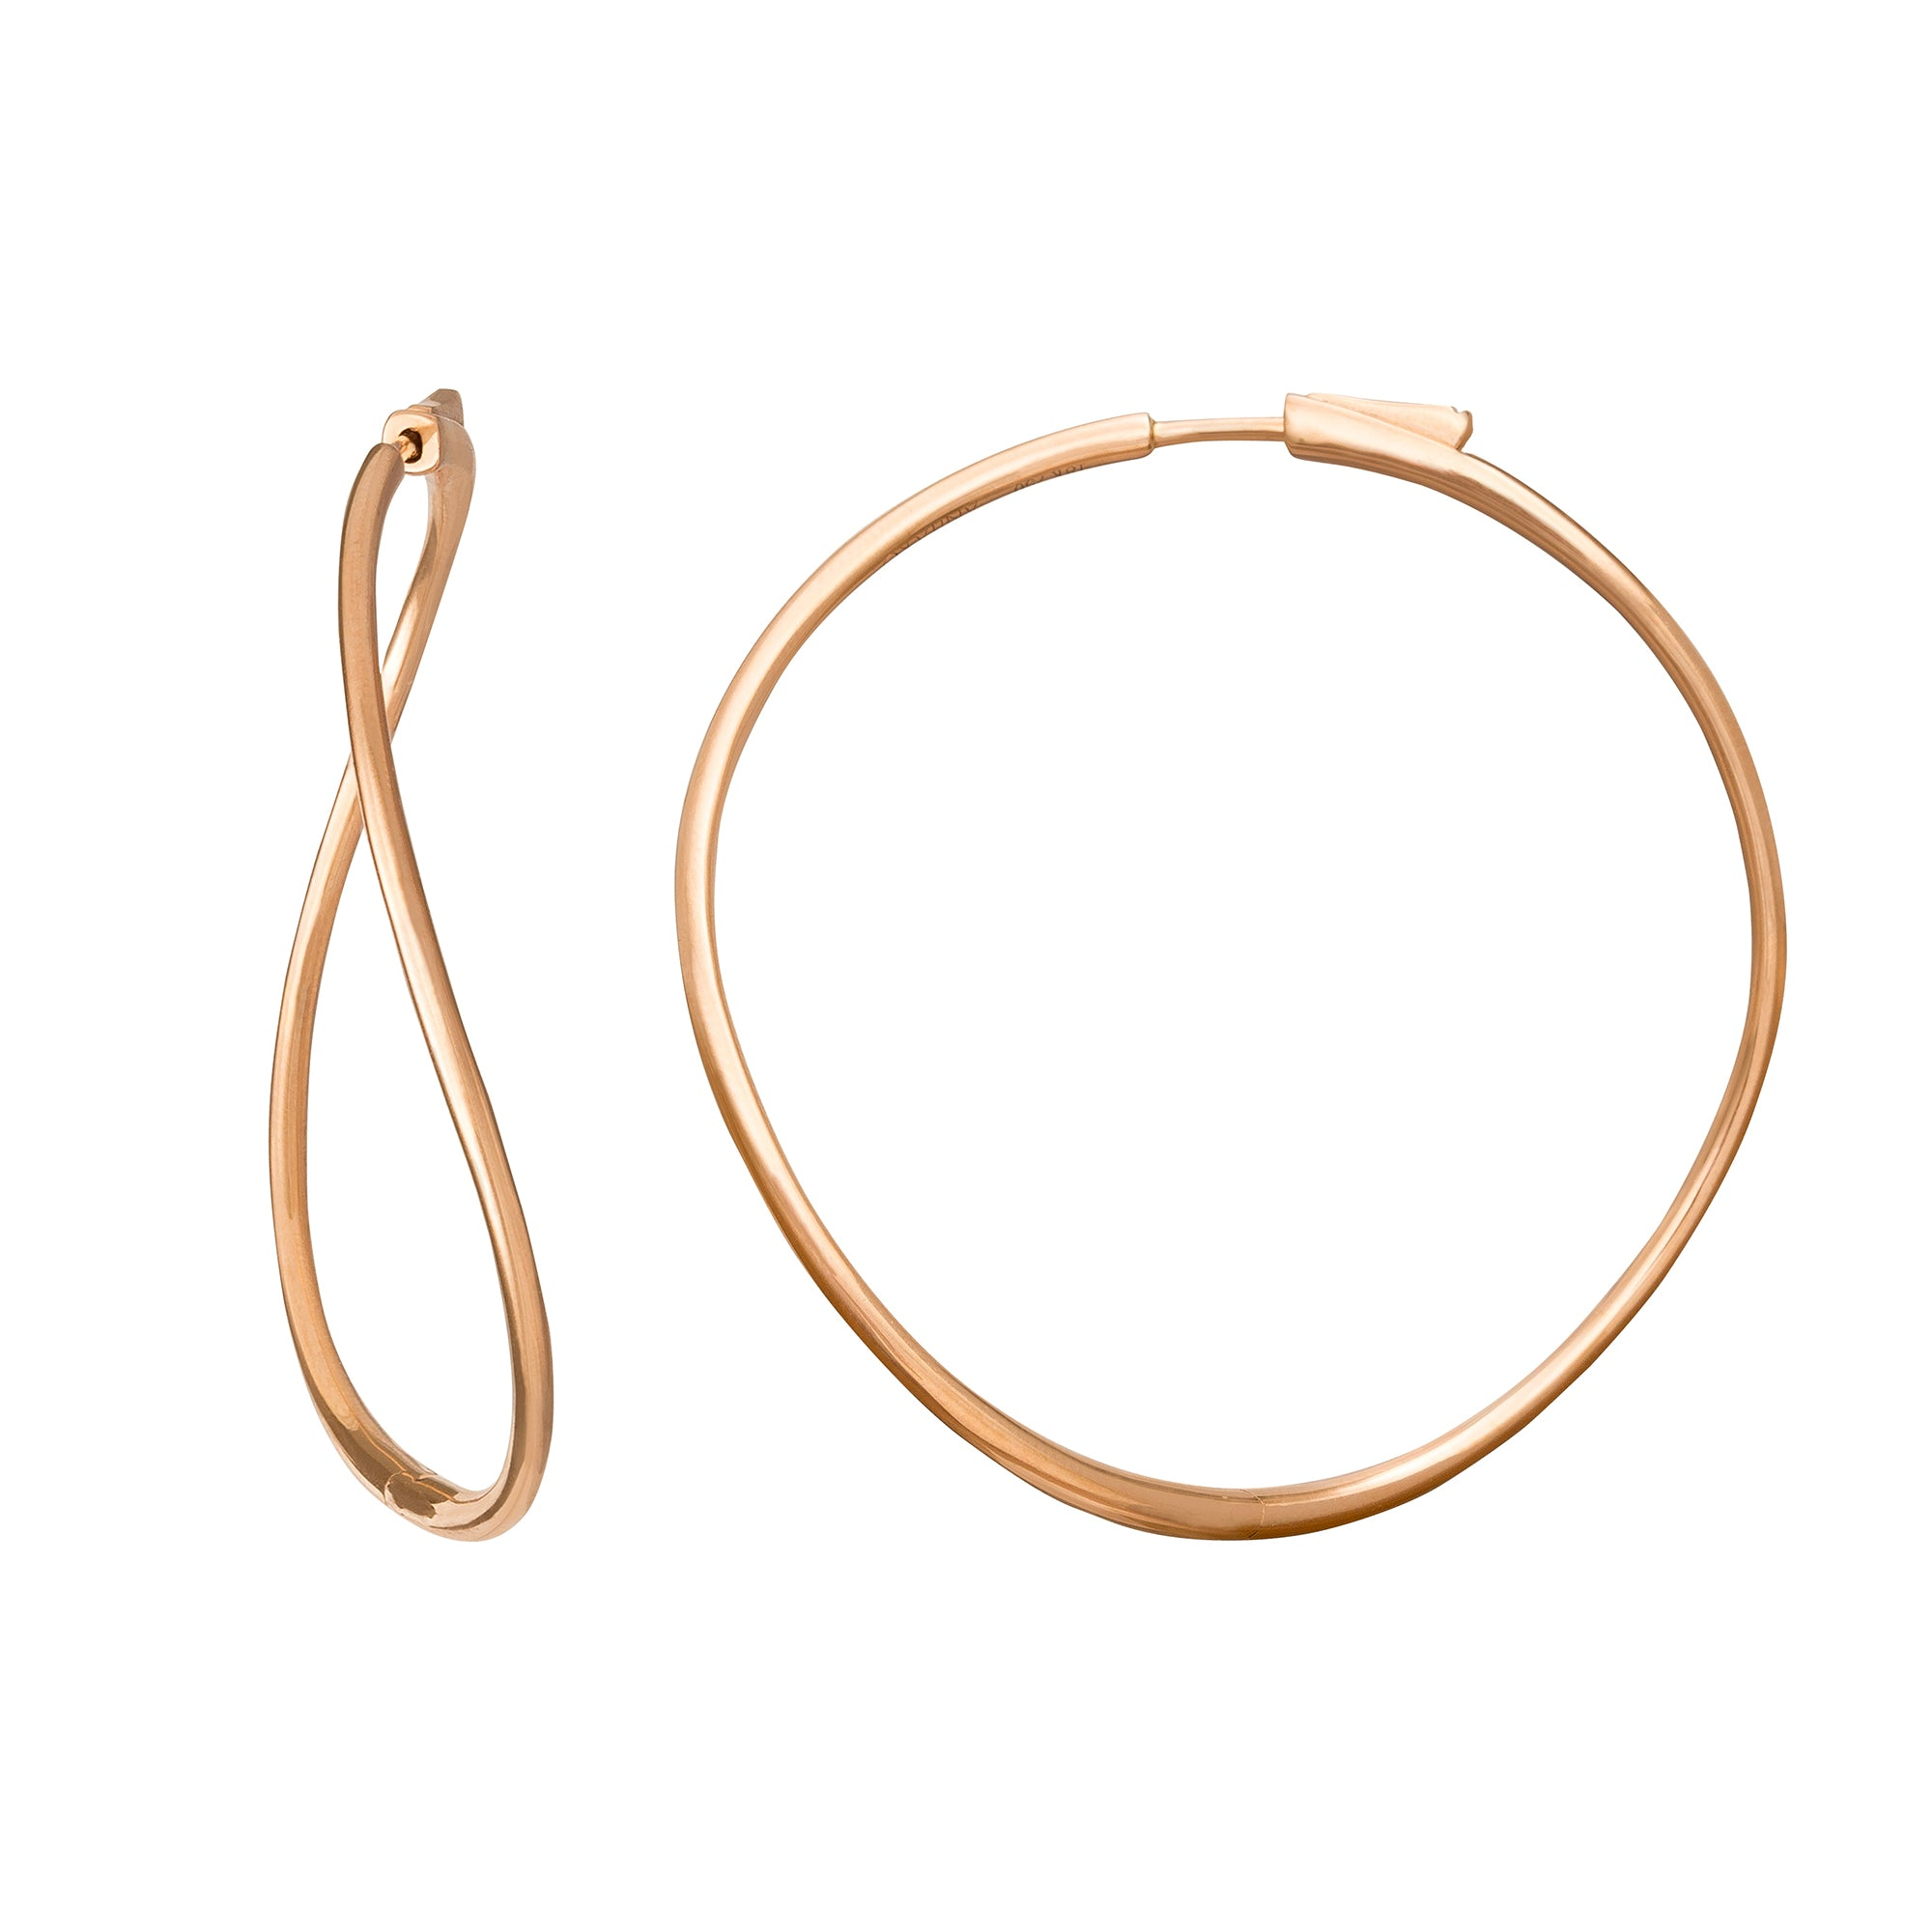 Twisted Hoops - Anita Ko - Earrings | Broken English Jewelry